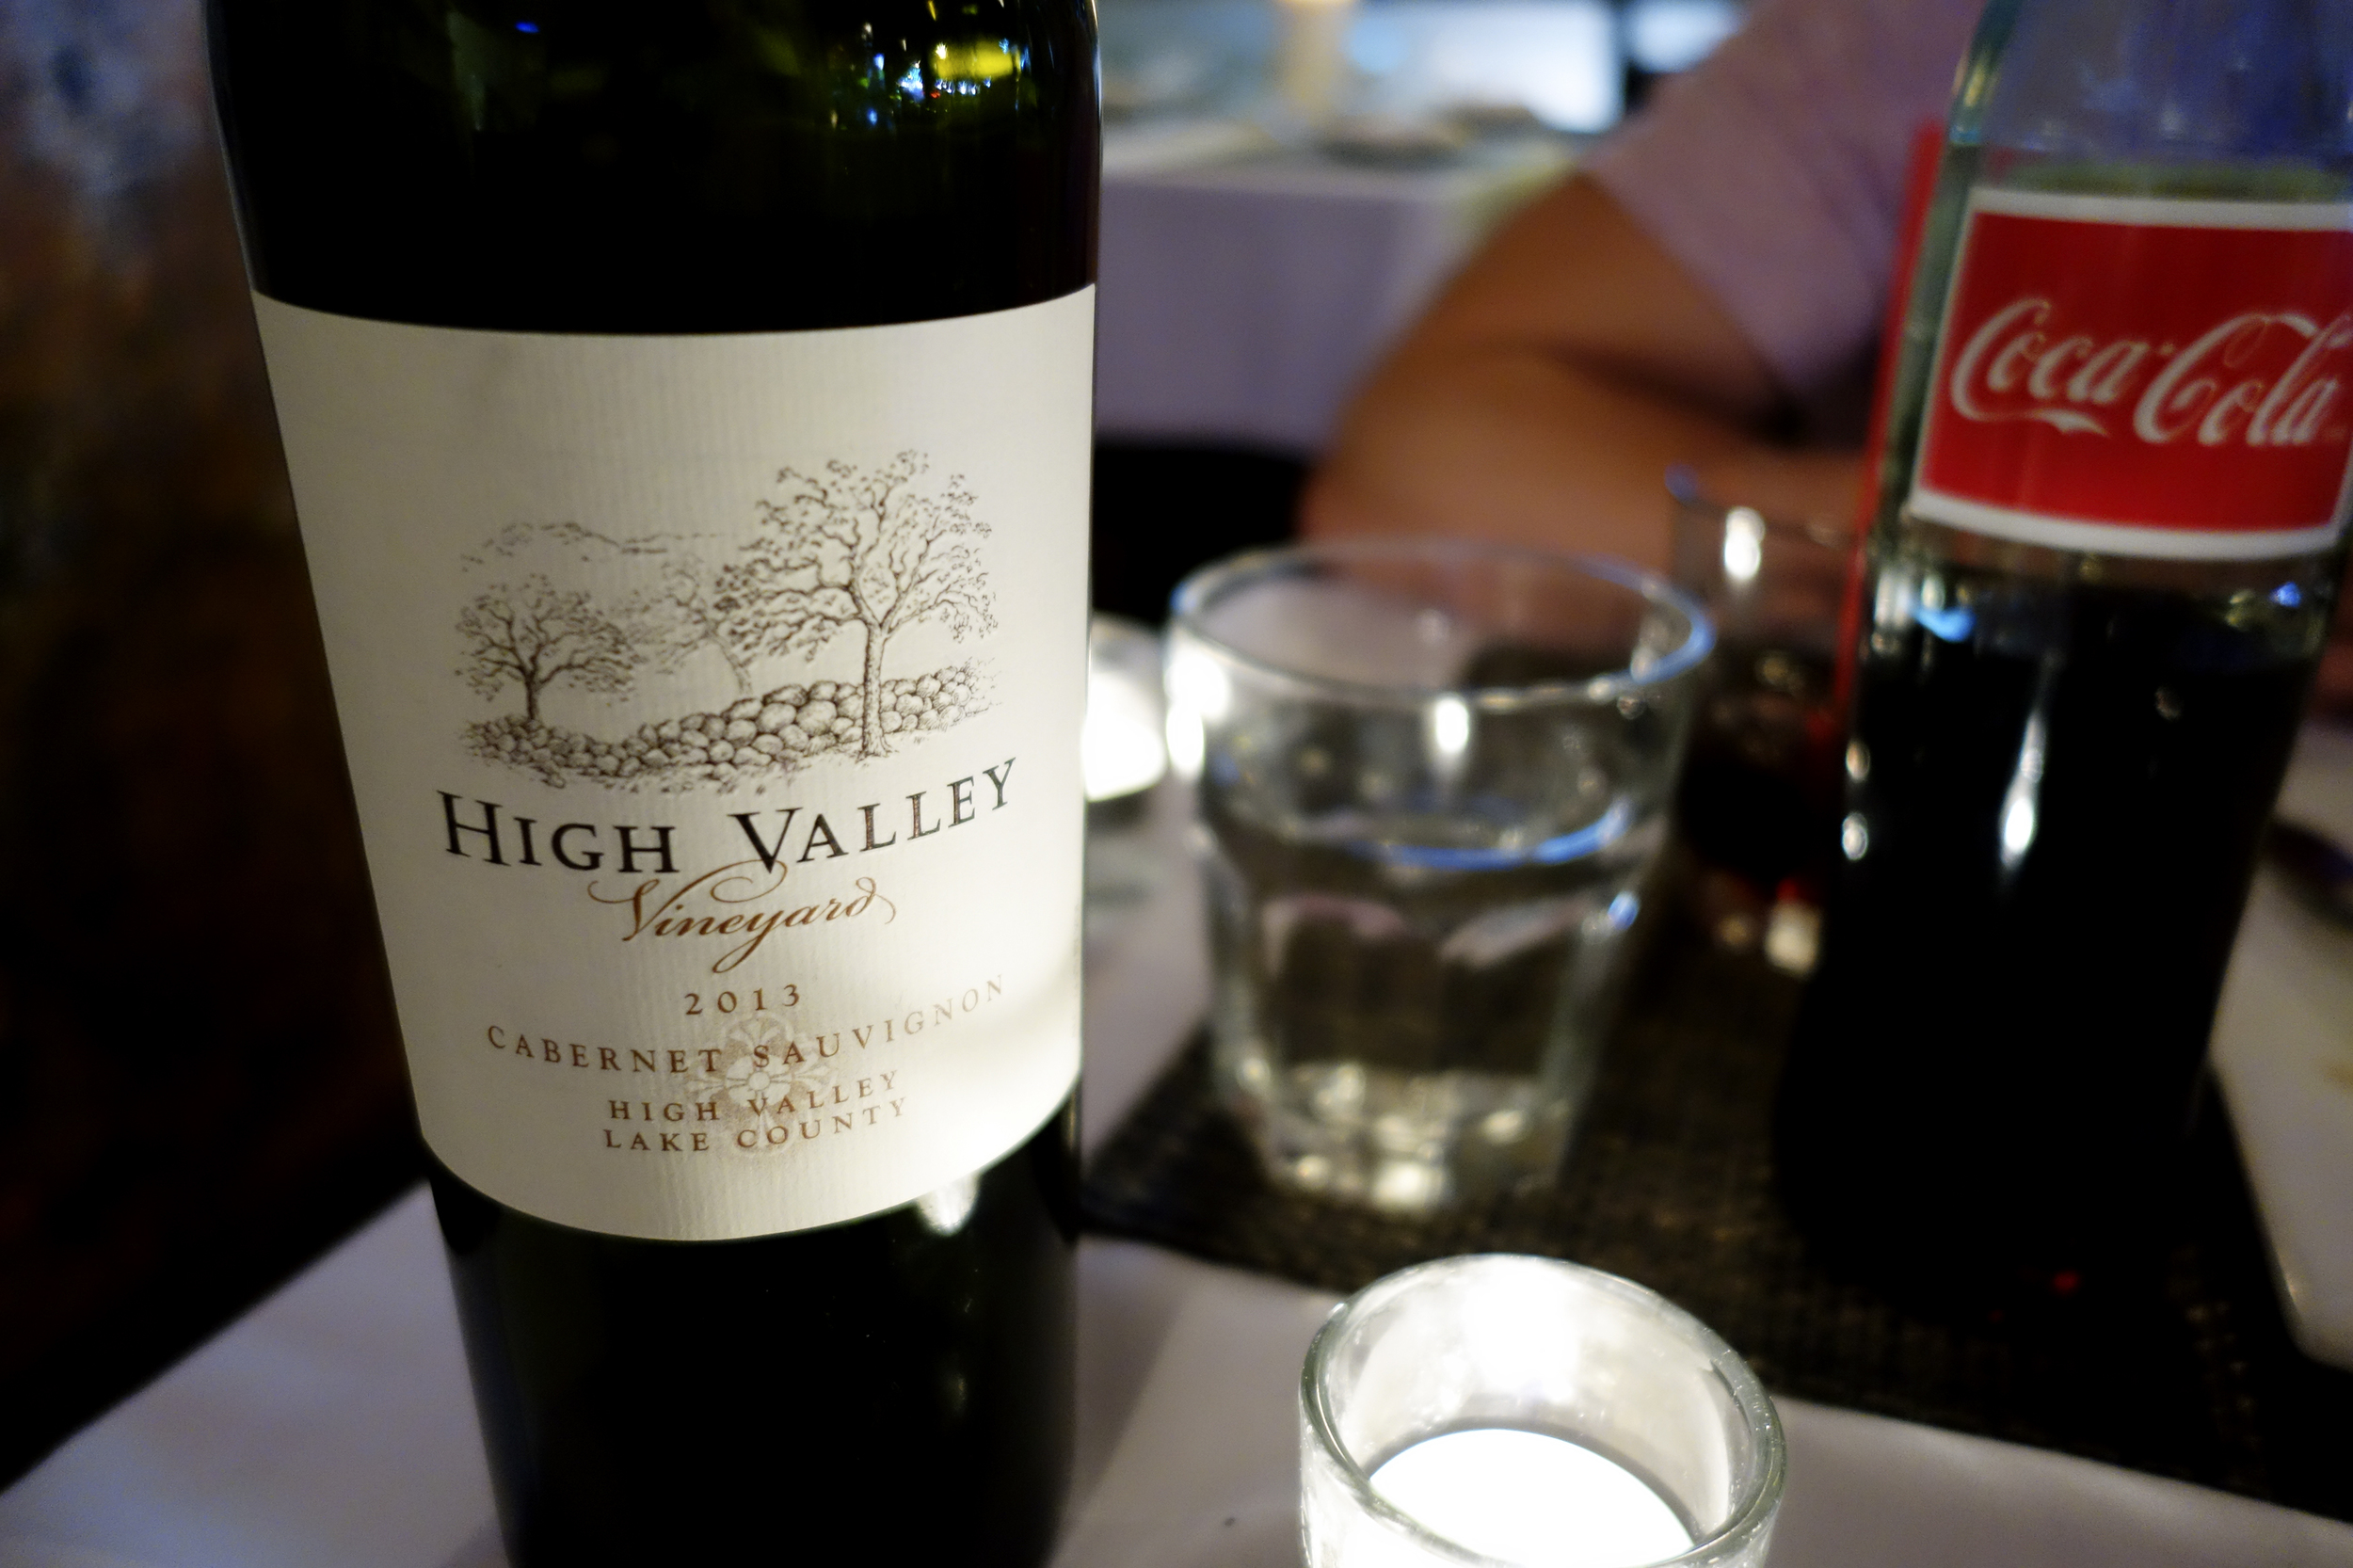 High Valley Vineyard 2013 Cabernet Sauvignon - Excellent red. Full bodied with a smooth finish.